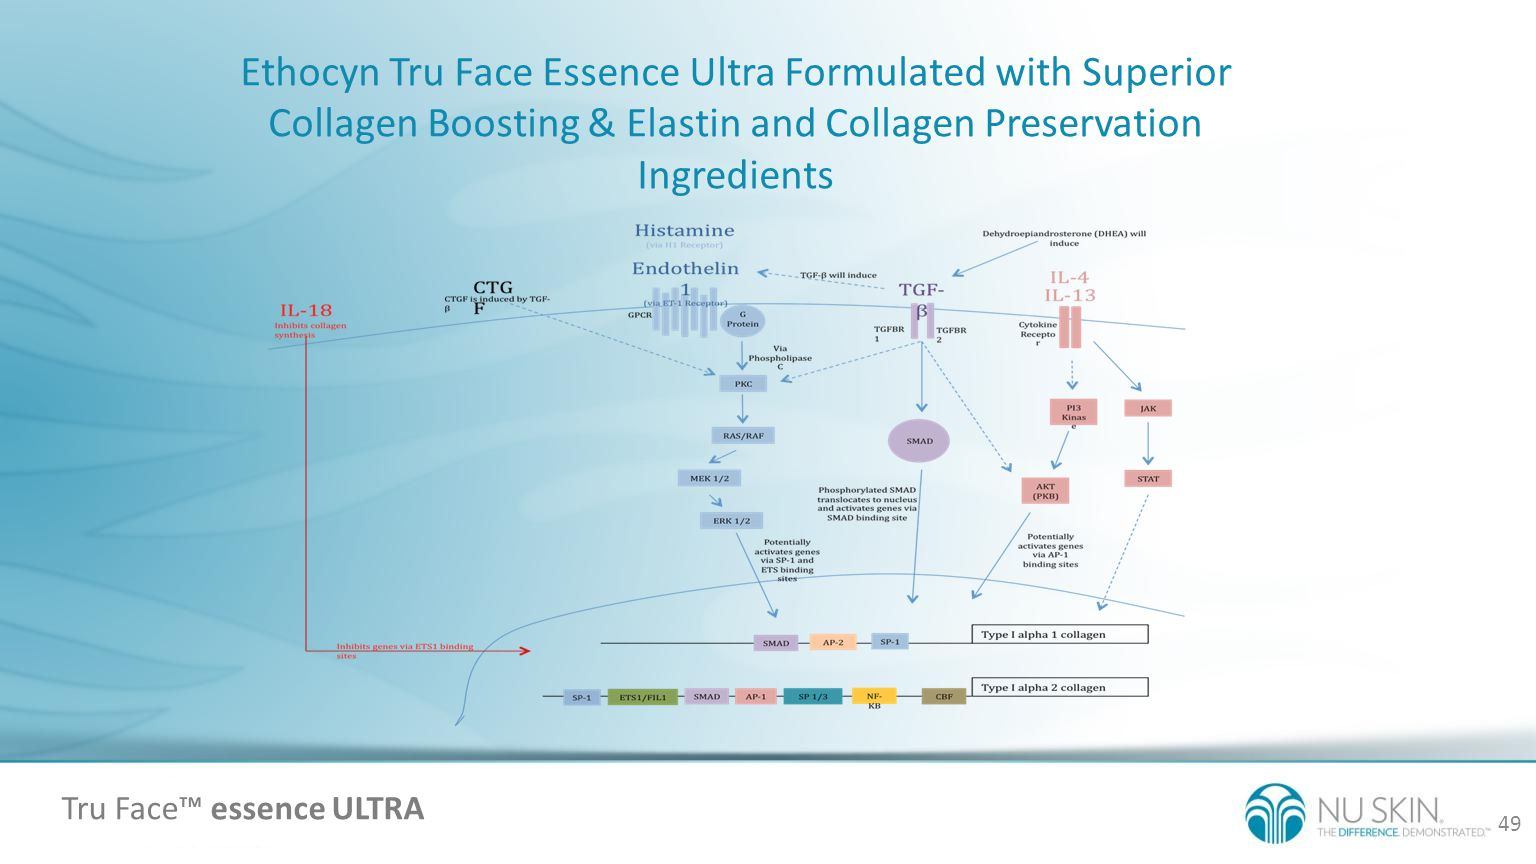 Ethocyn Tru Face Essence Ultra Formulated with Superior Collagen Boosting & Elastin and Collagen Preservation Ingredients